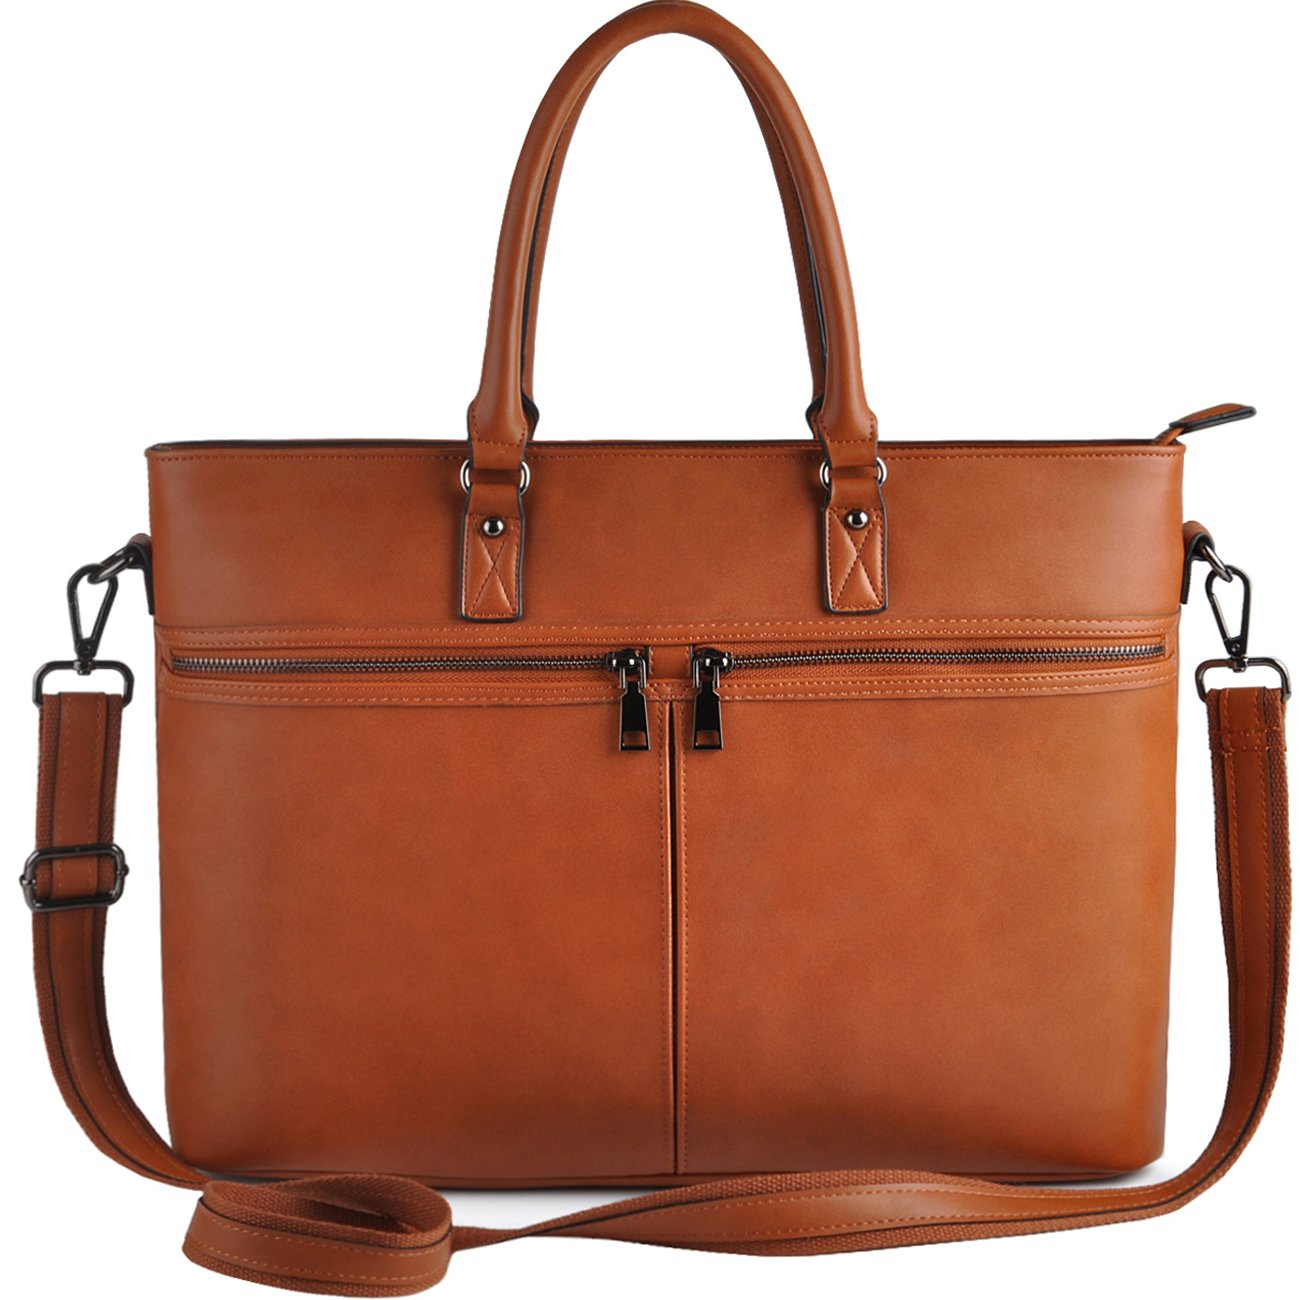 Laptop Tote,Business Laptop Bag for Women Up to 15.6 Inch,EDODAY Casual Laptop Tote Bag (b.Brown)